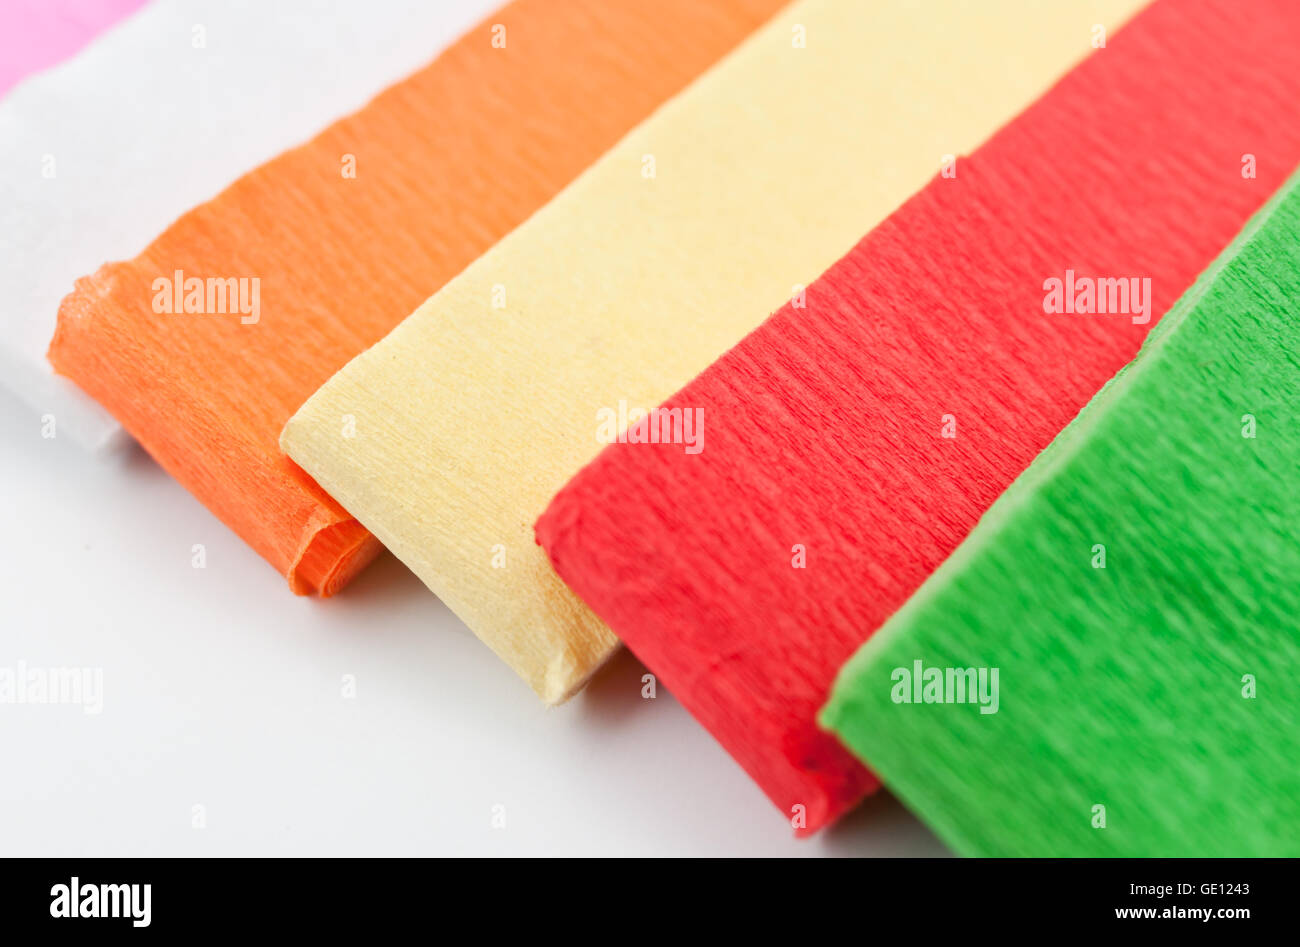 rainbow color paper isolated on white background. - Stock Image